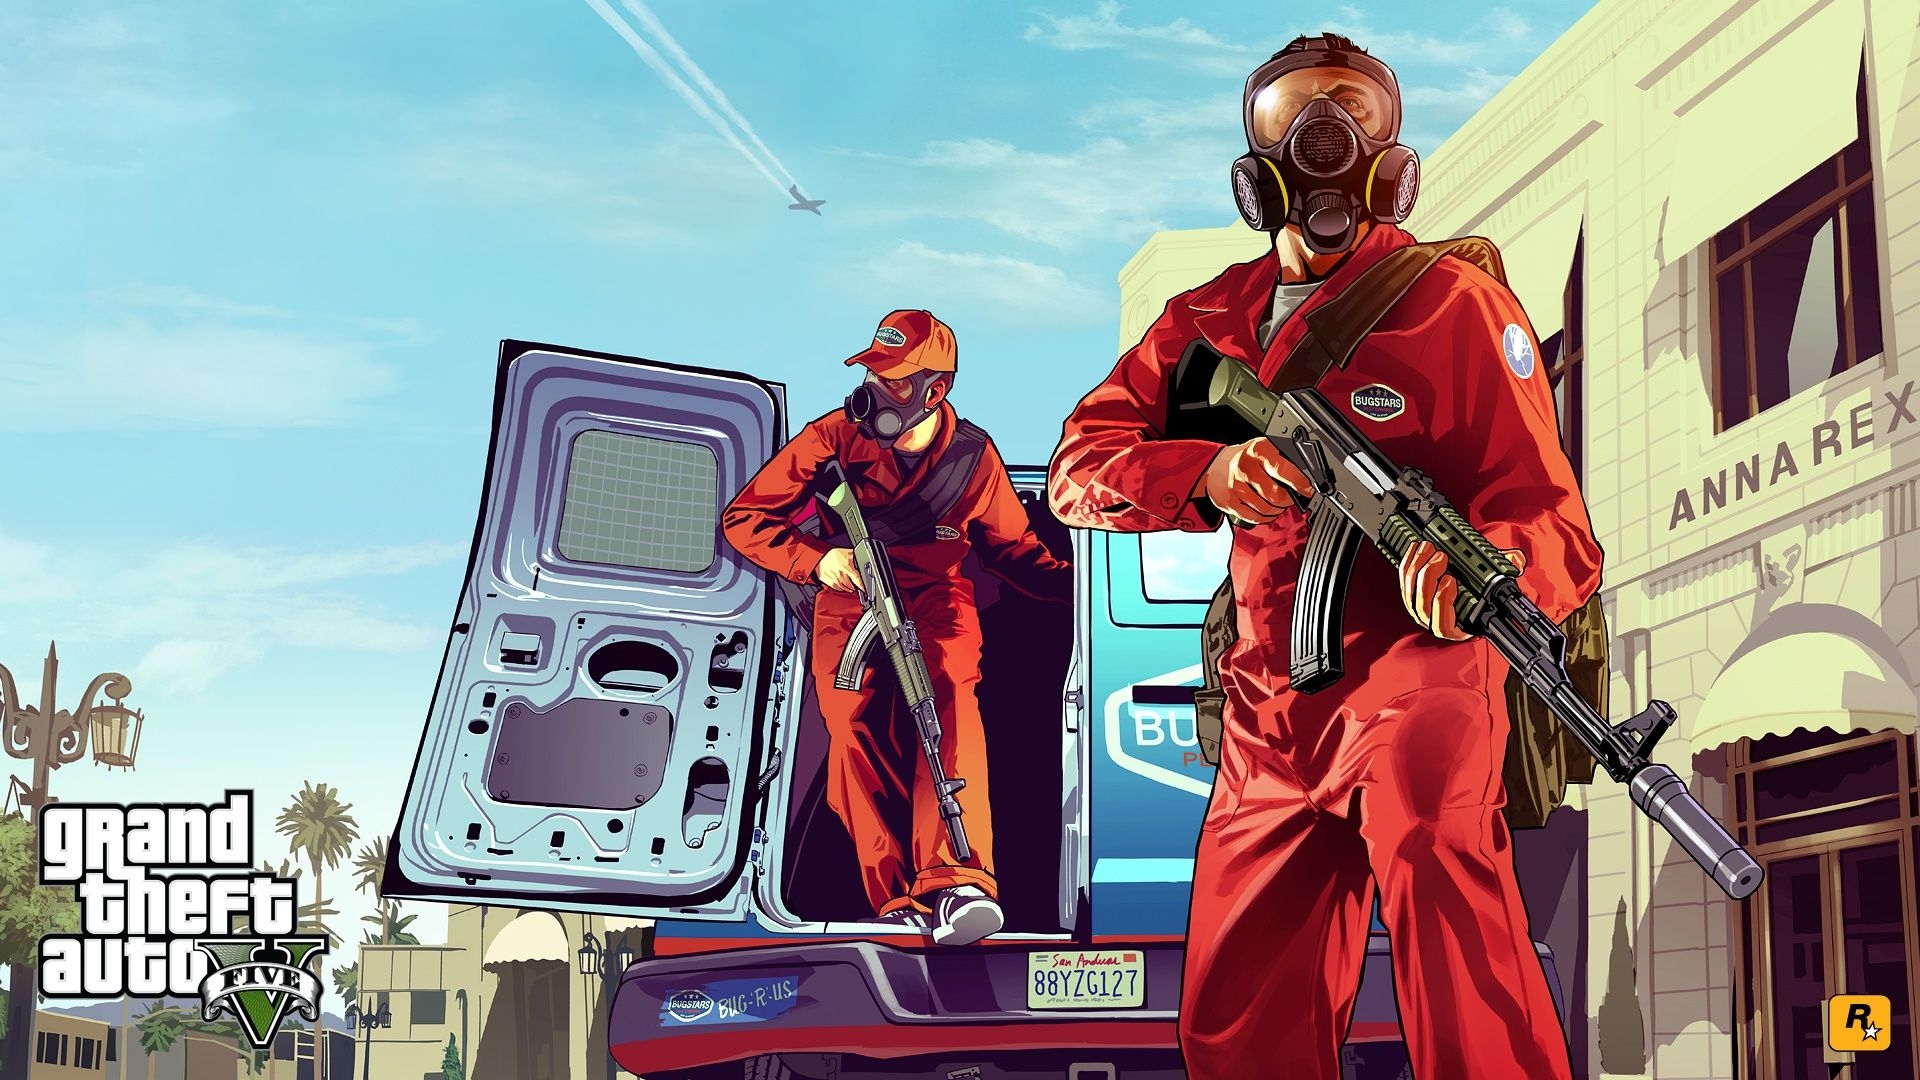 gta v wallpaper 1920x1080 - wallpapersafari | android | pinterest